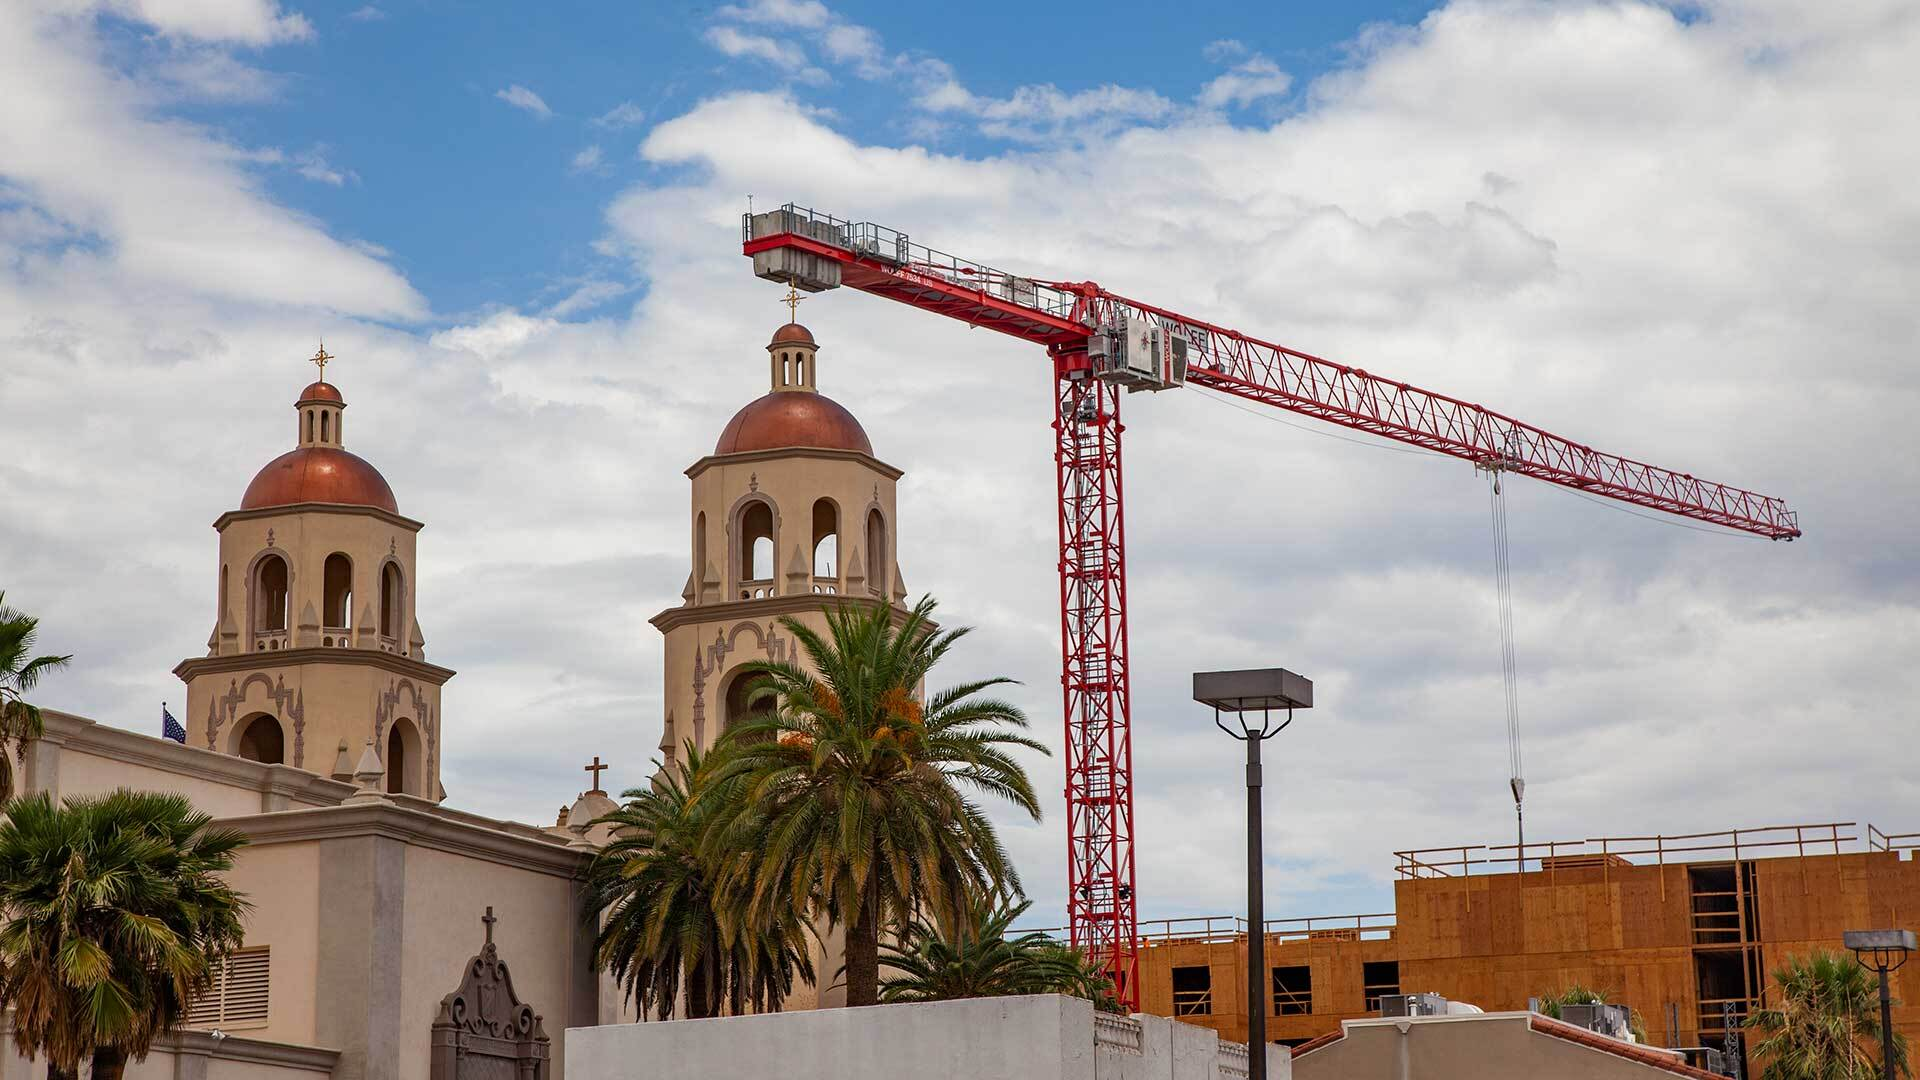 A crane rises above the construction site for a new Hilton Hotel across from the Cathedral St. Augustine.